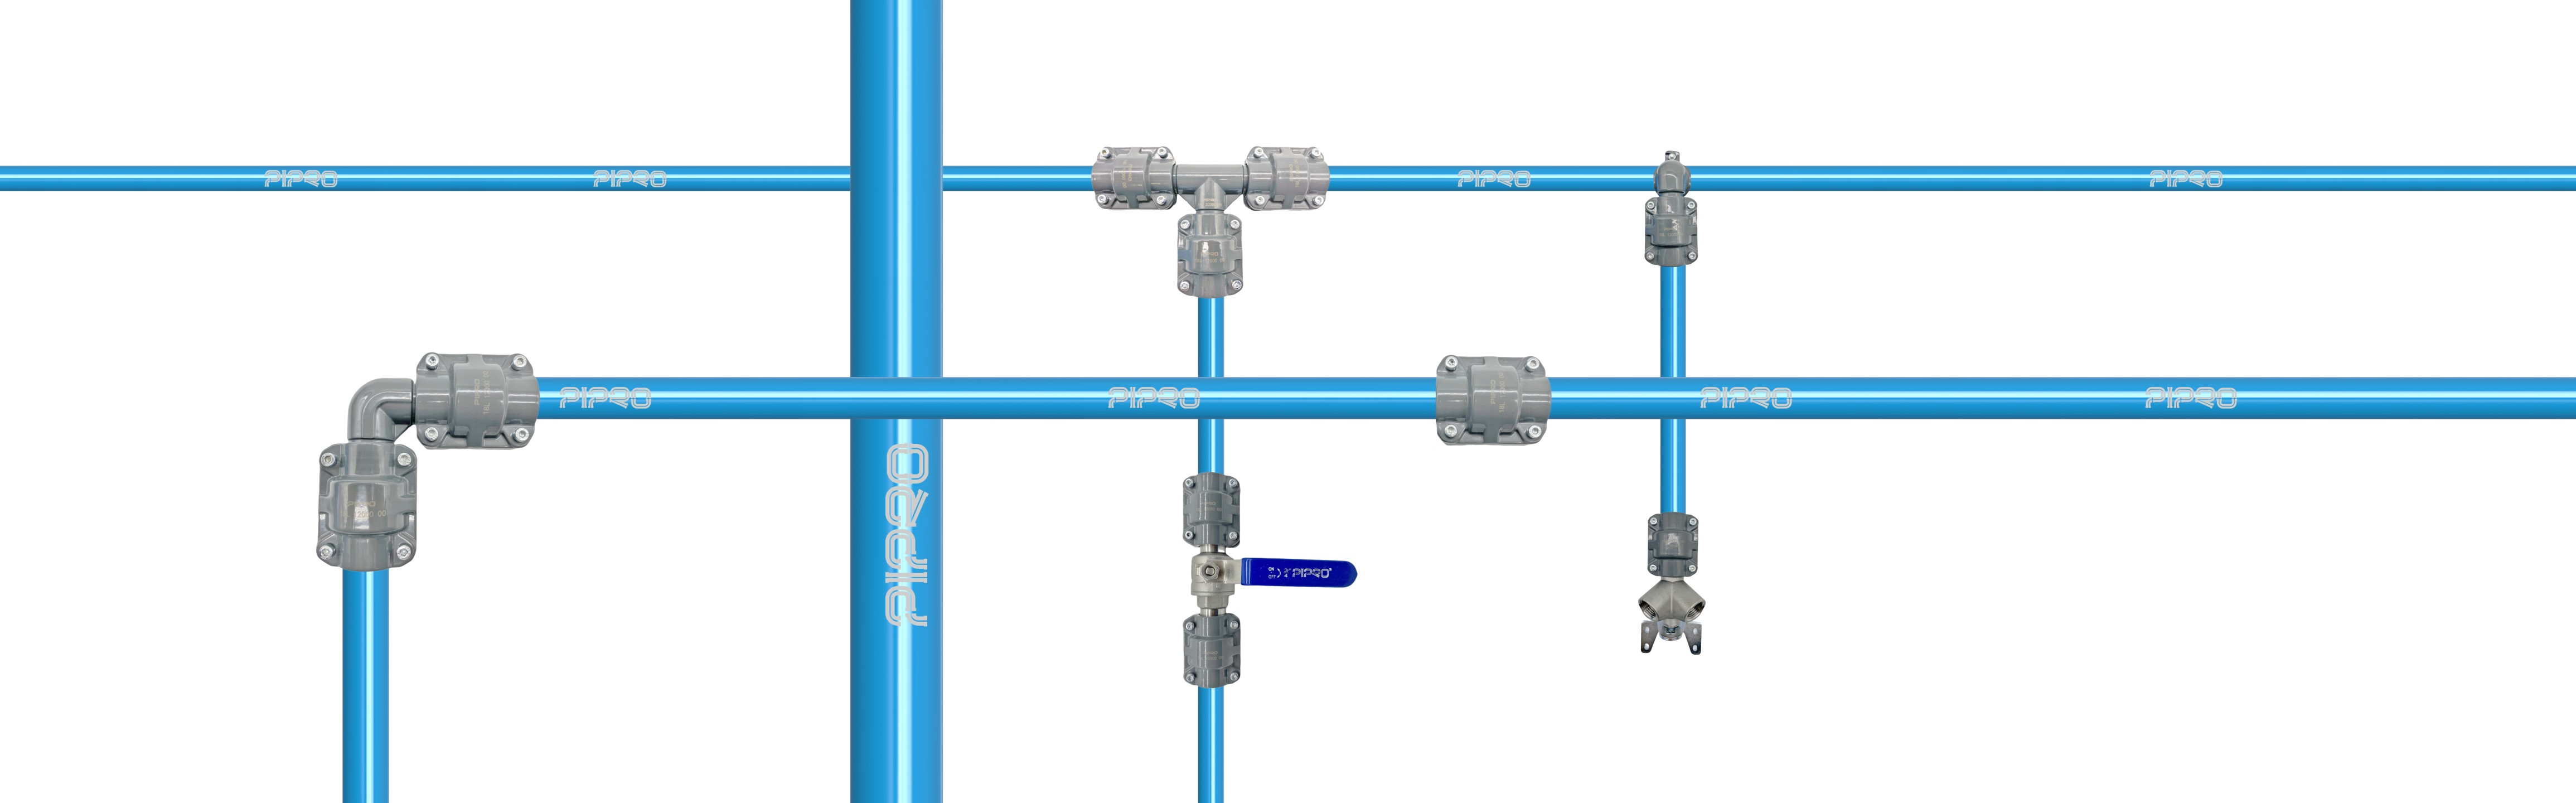 Aluminium Piping Systems